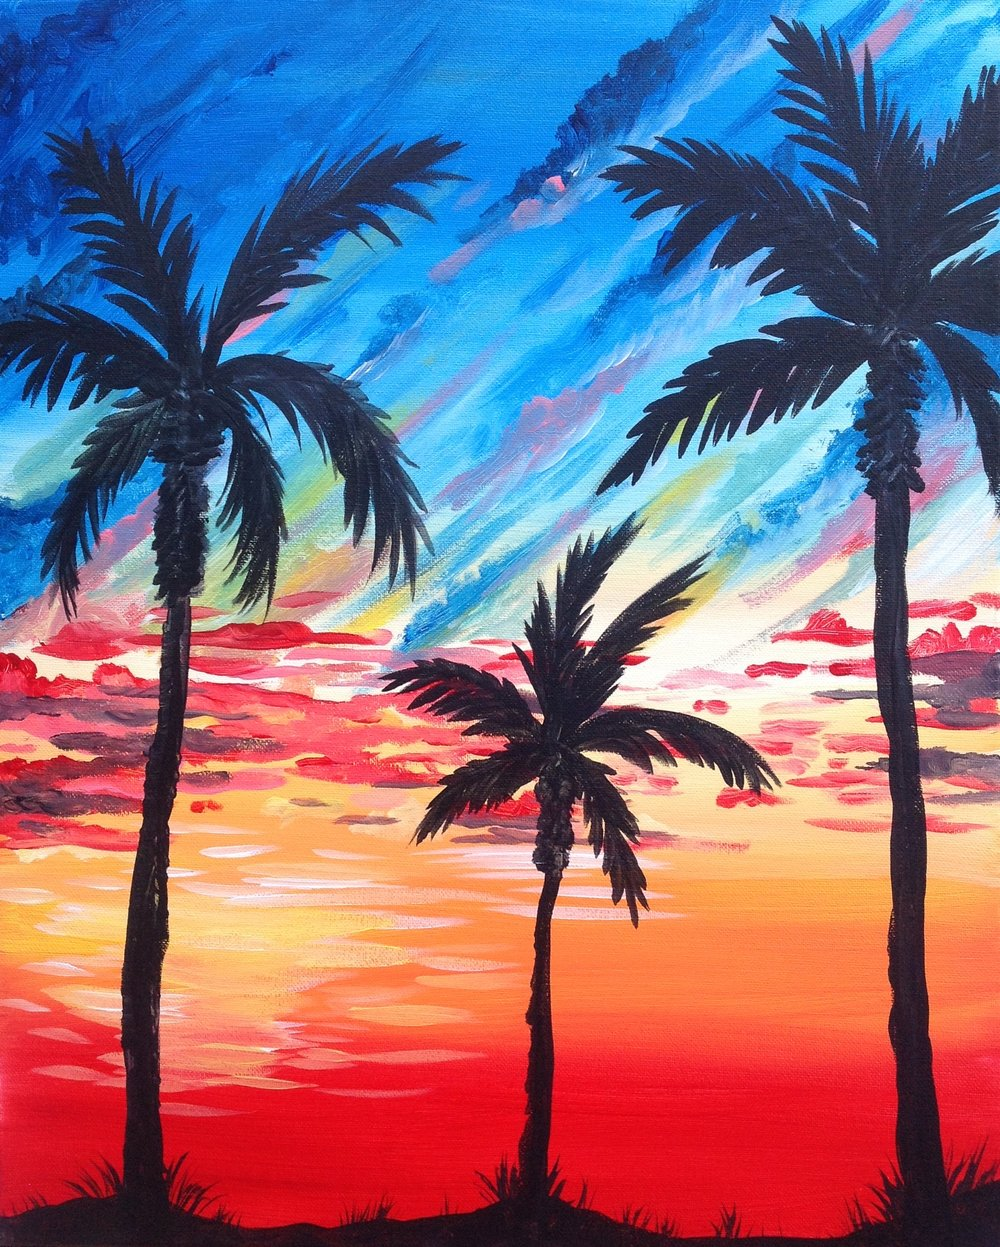 Sunset at the Palms